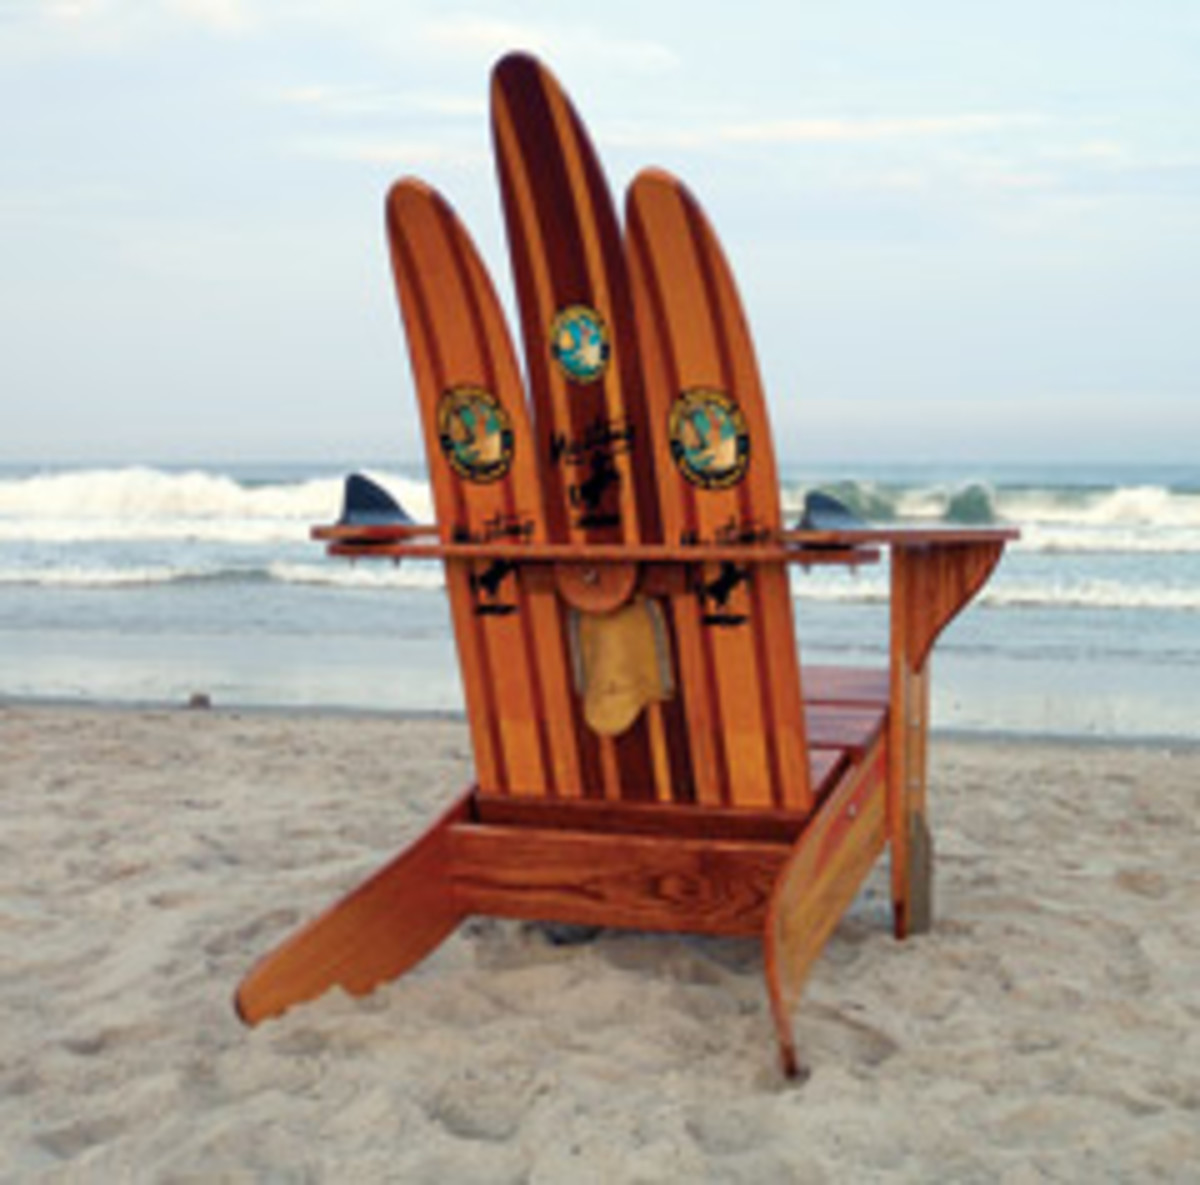 Brian Amaral Turns Vintage Water Skis Into Furniture Through His Business,  Water Ski Adirondack Chairs